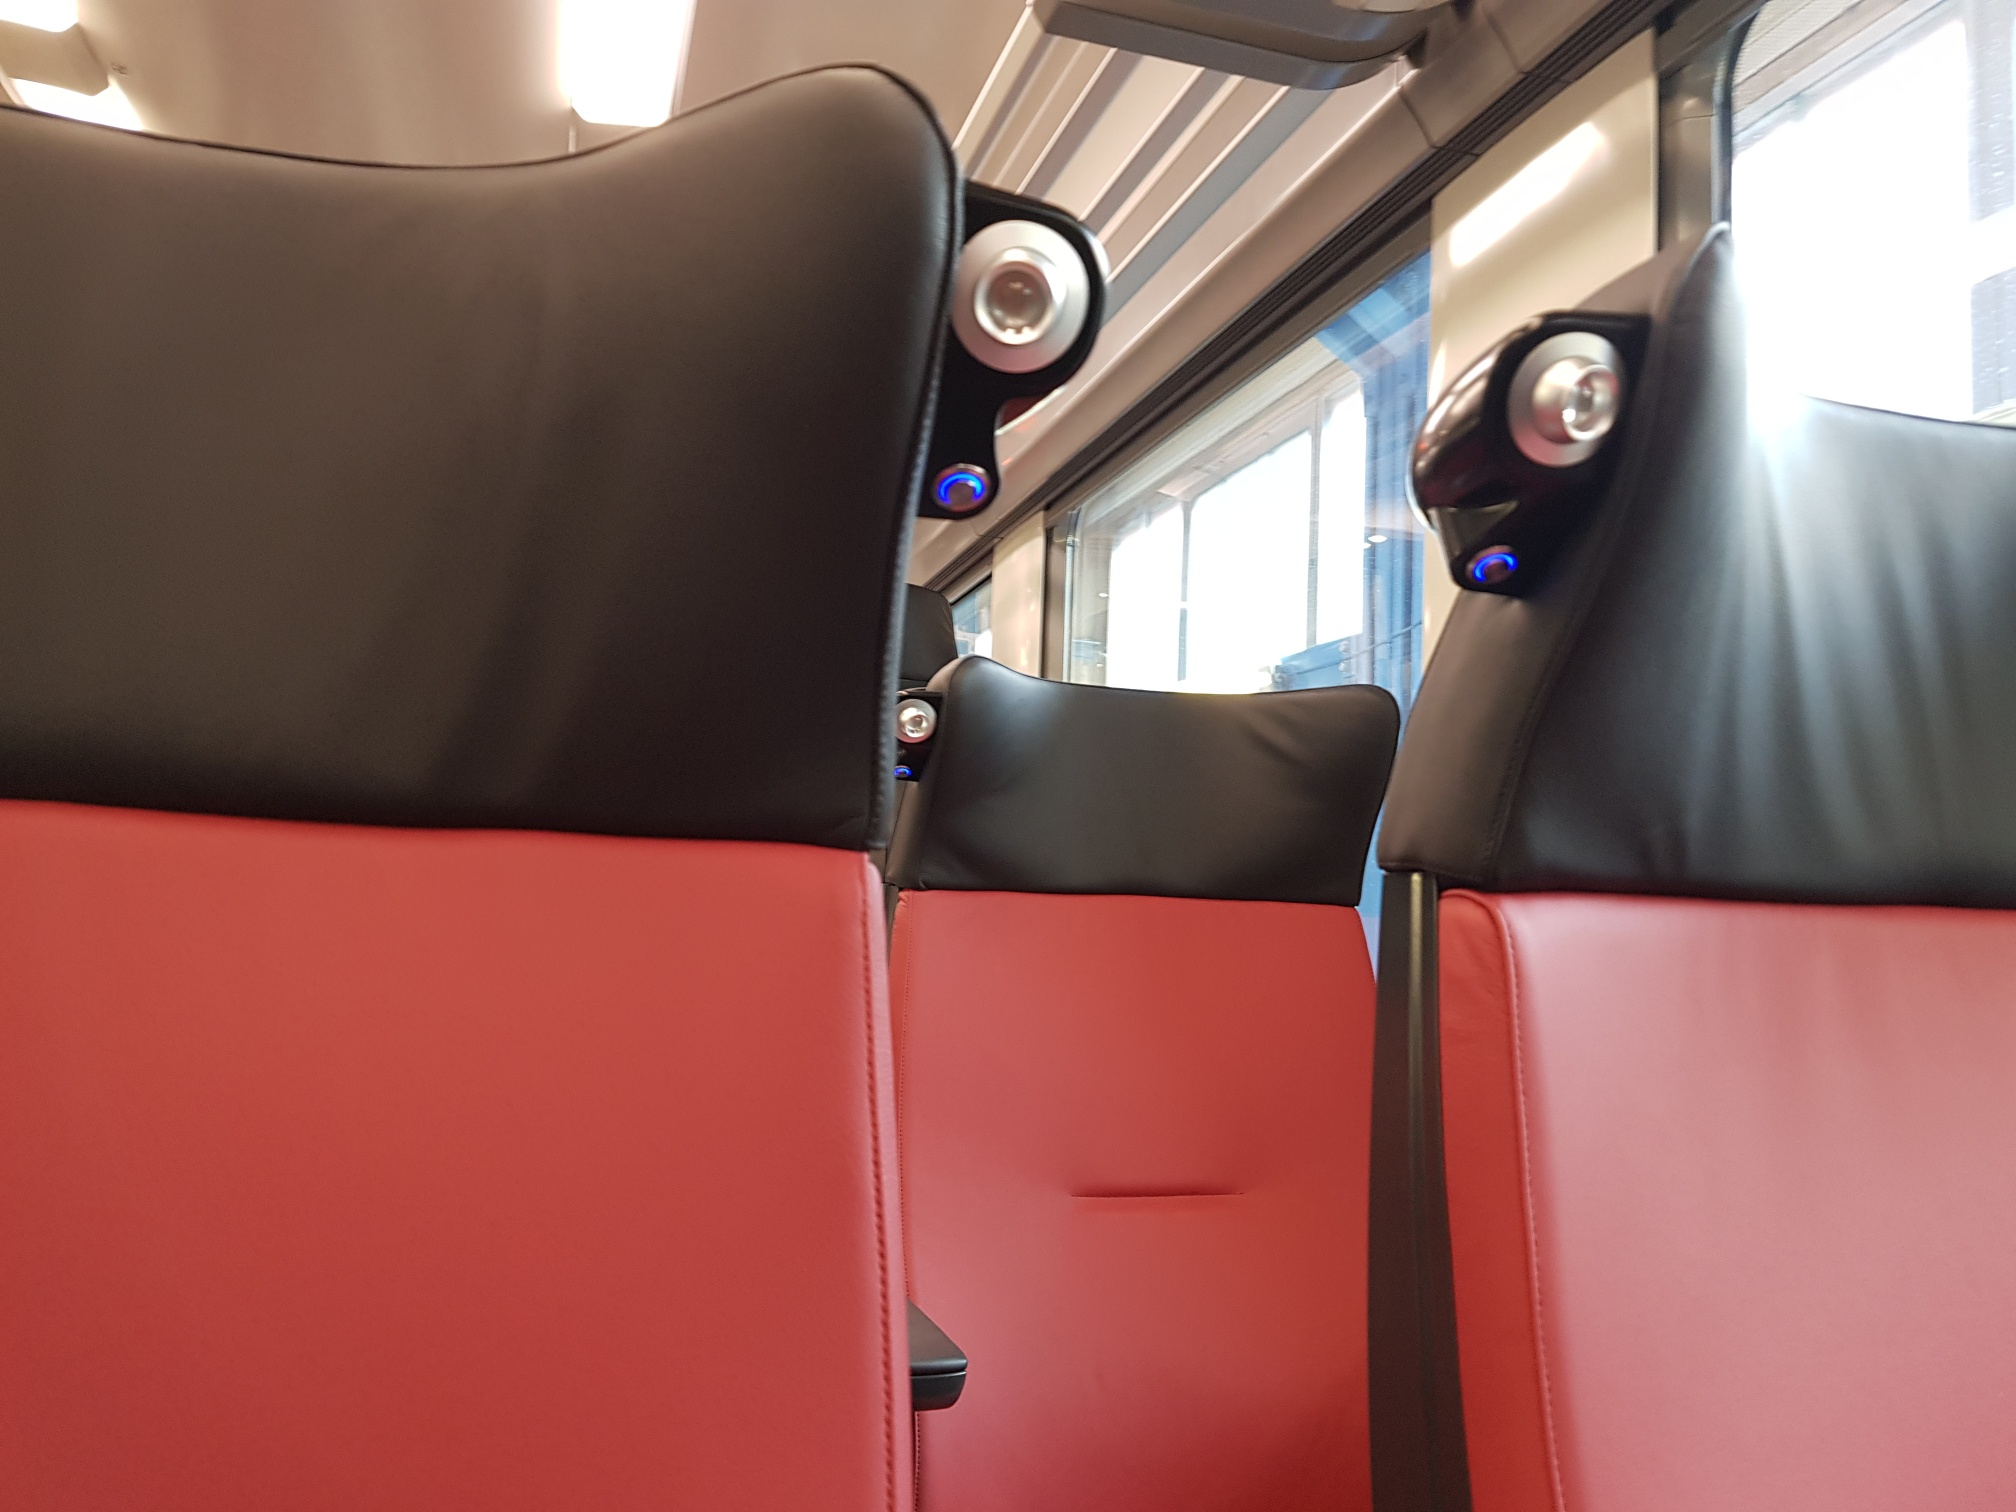 BIOSPHERE FLUX in association with COMPIN delivers the reading lights for ALSTOM Algeria project